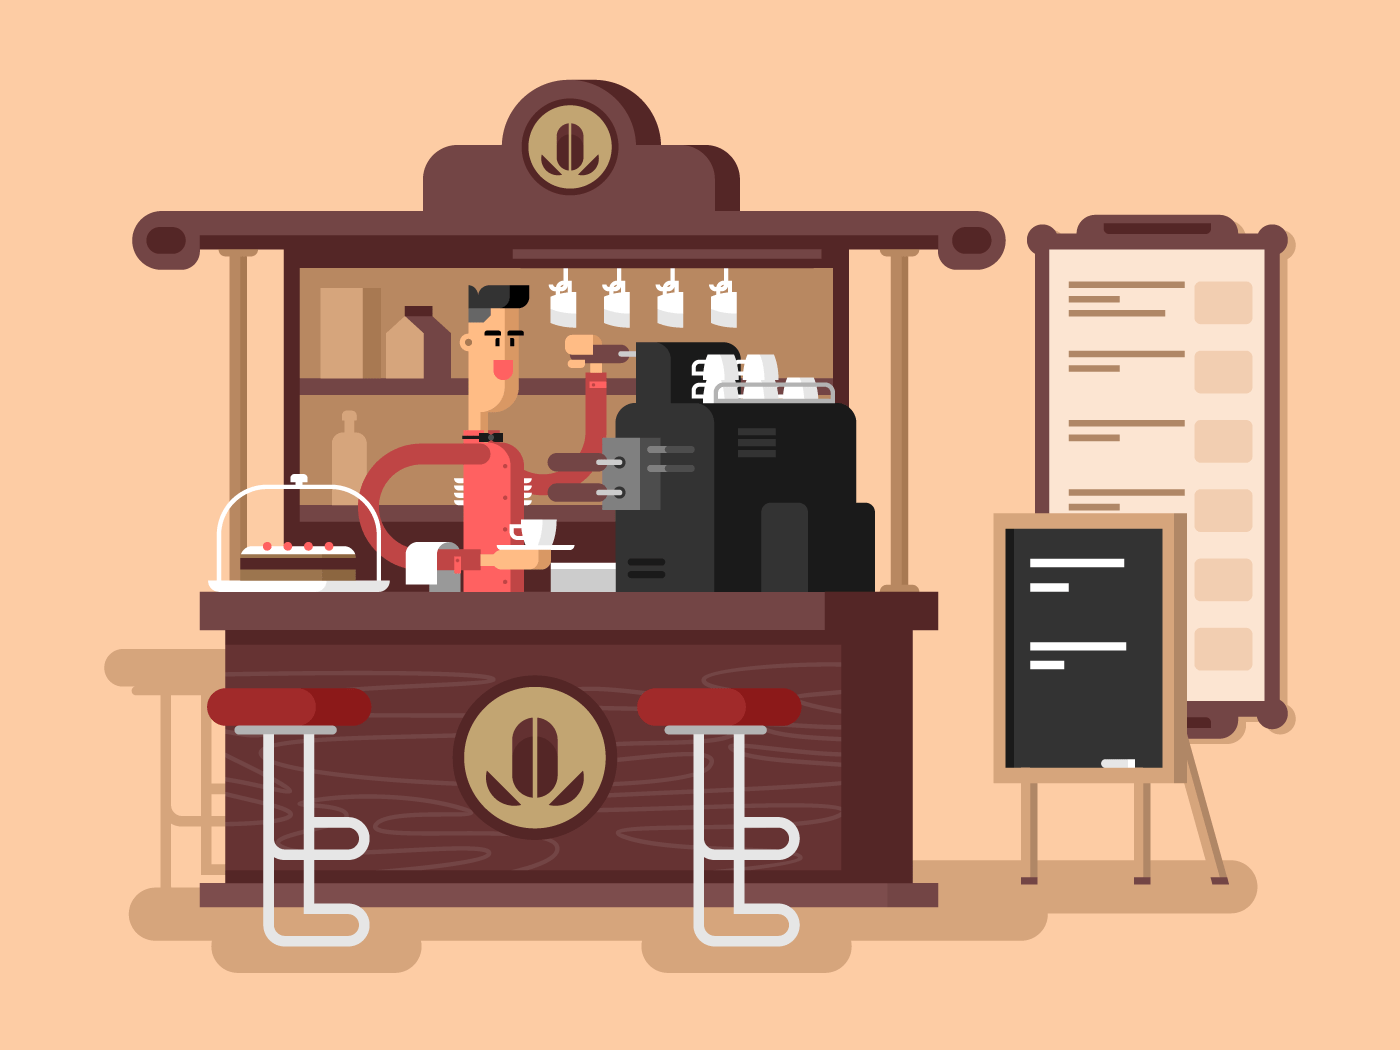 Coffee shop interior flat vector illustration